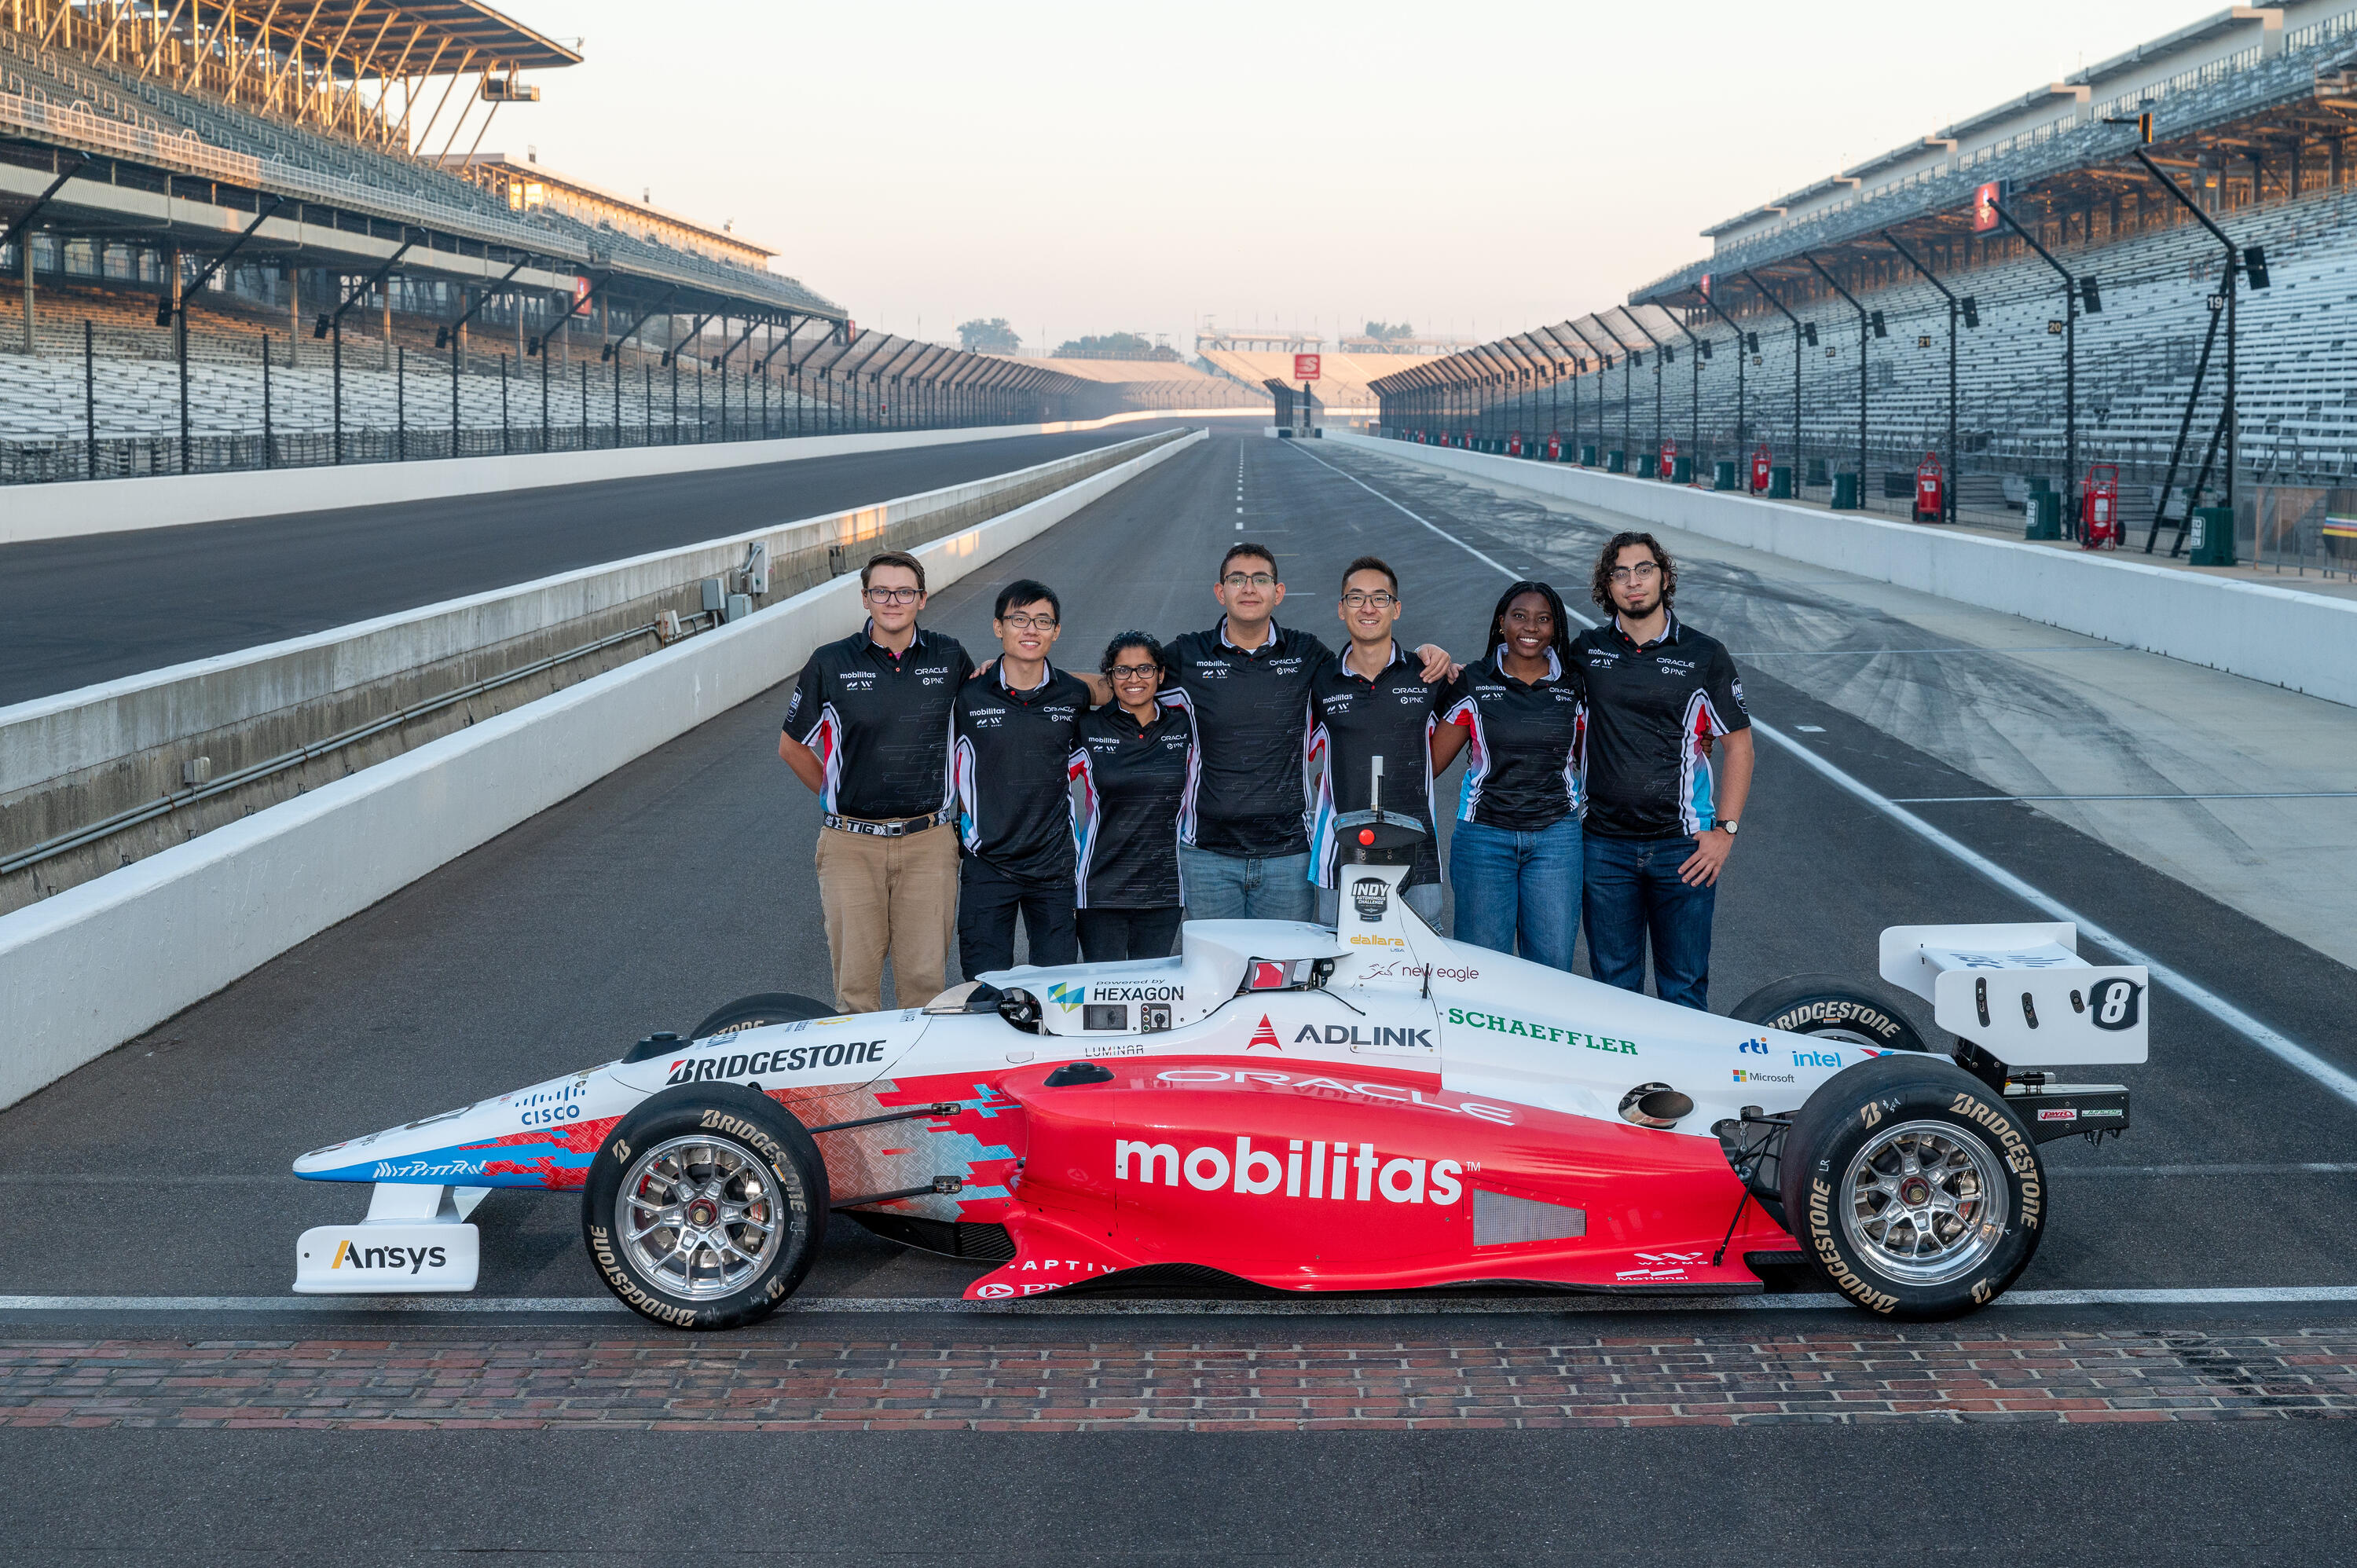 Indy race car and students